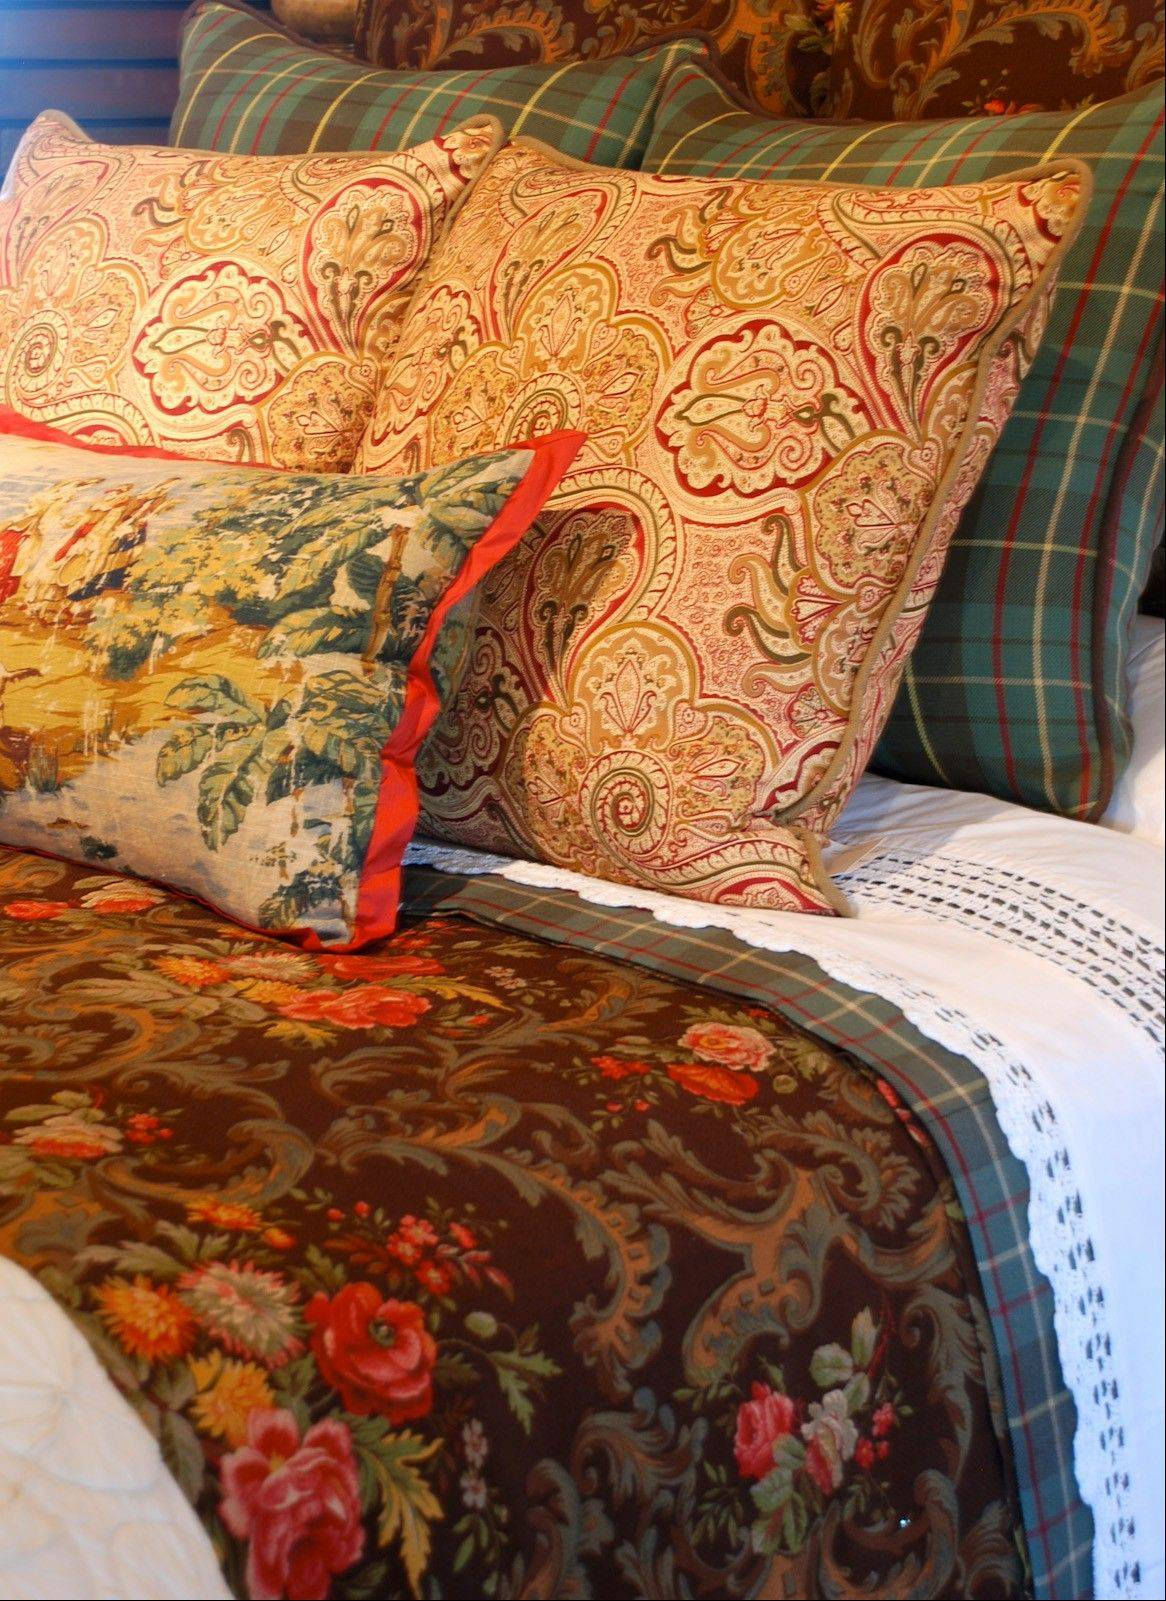 This richly dressed bed is exploding with wonderful patterns. With a mix of tartan plaid, paisley, toile and floral fabric, it looks divine.